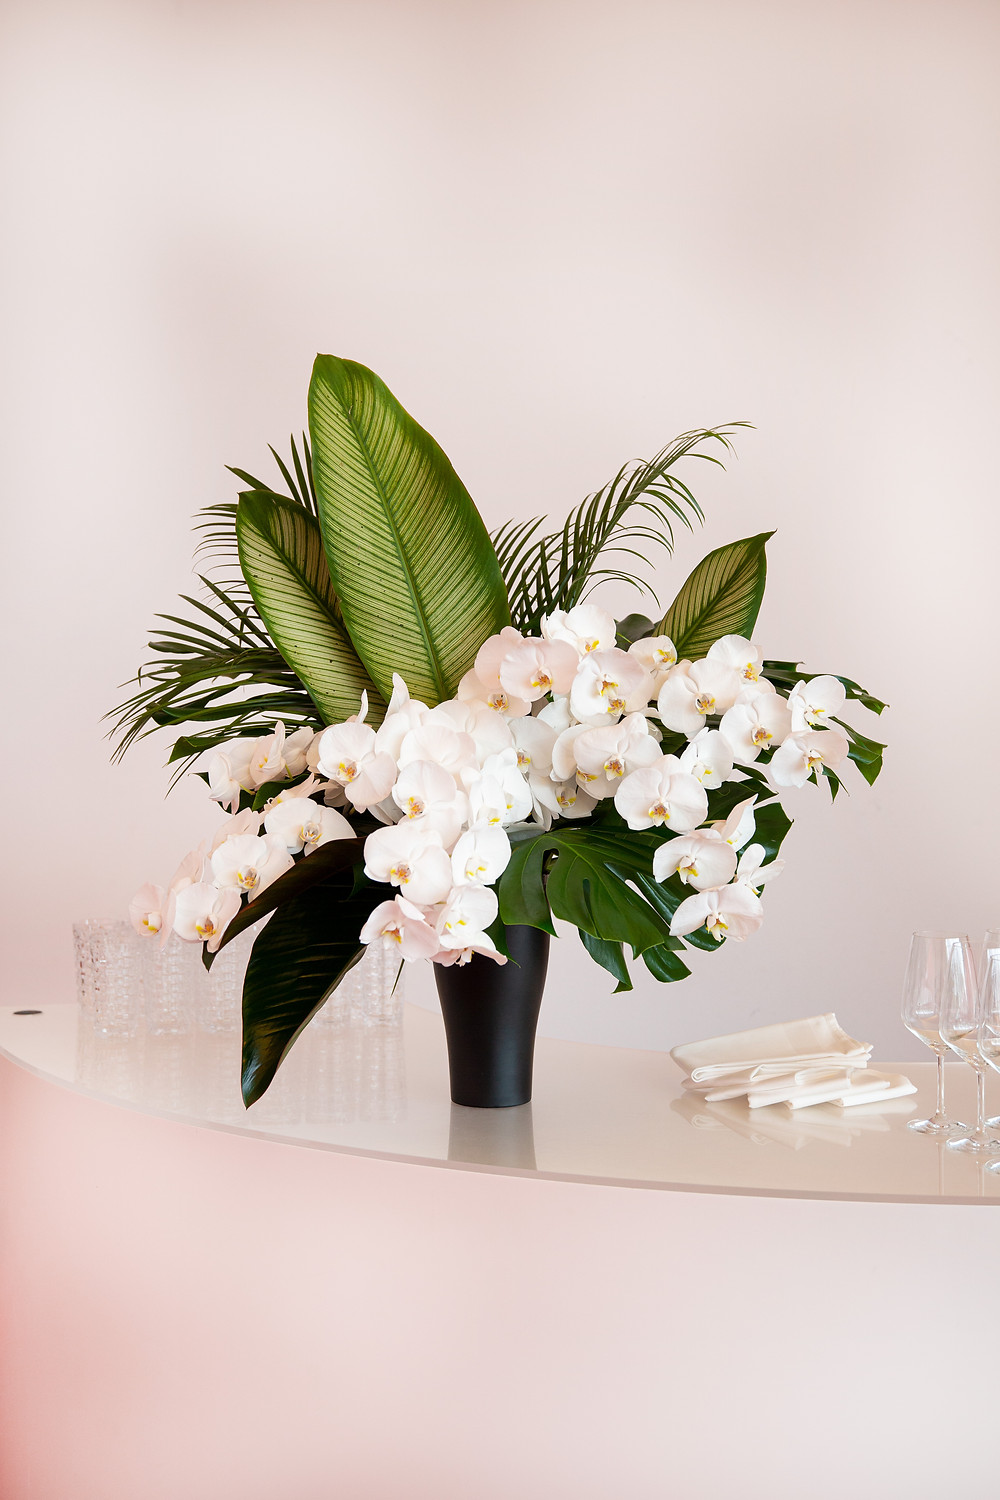 green and white floral arrangement with white orchids